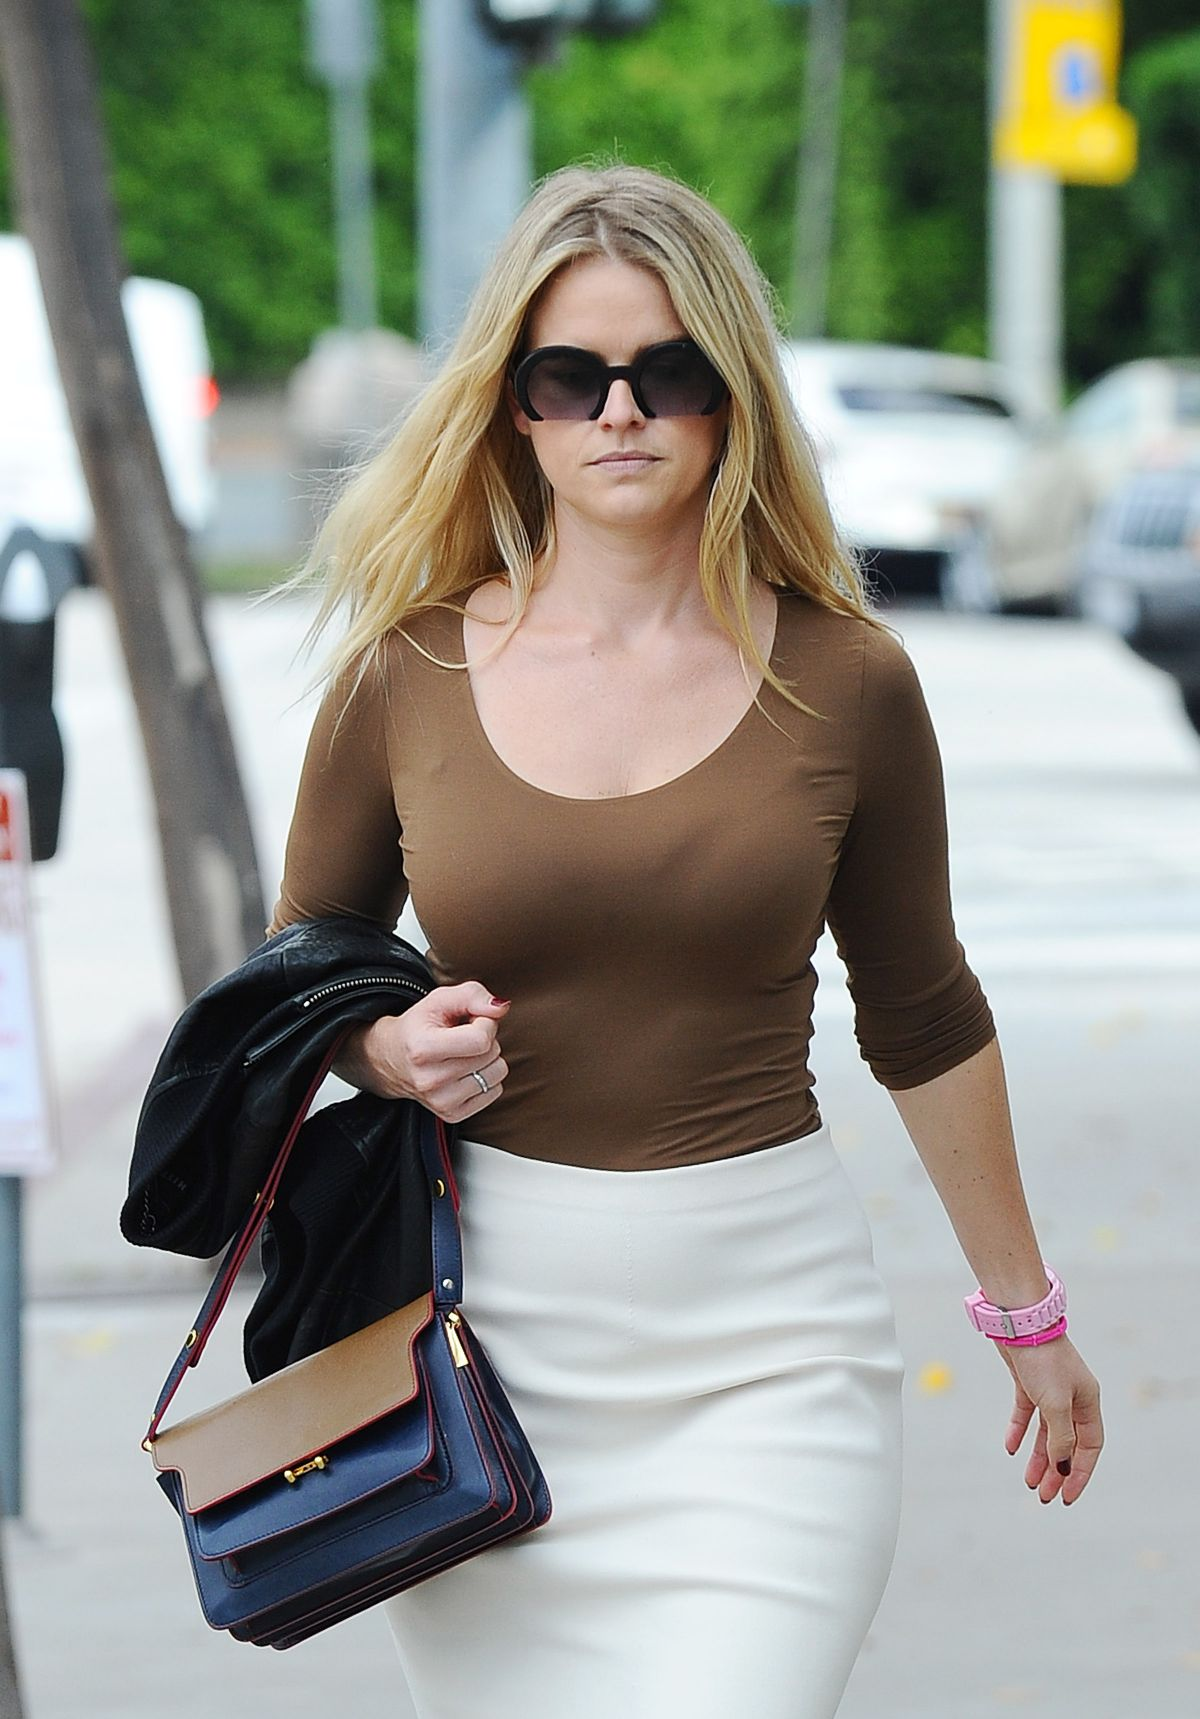 alice eve out and about los angeles 10 05 2015 hawtcelebs